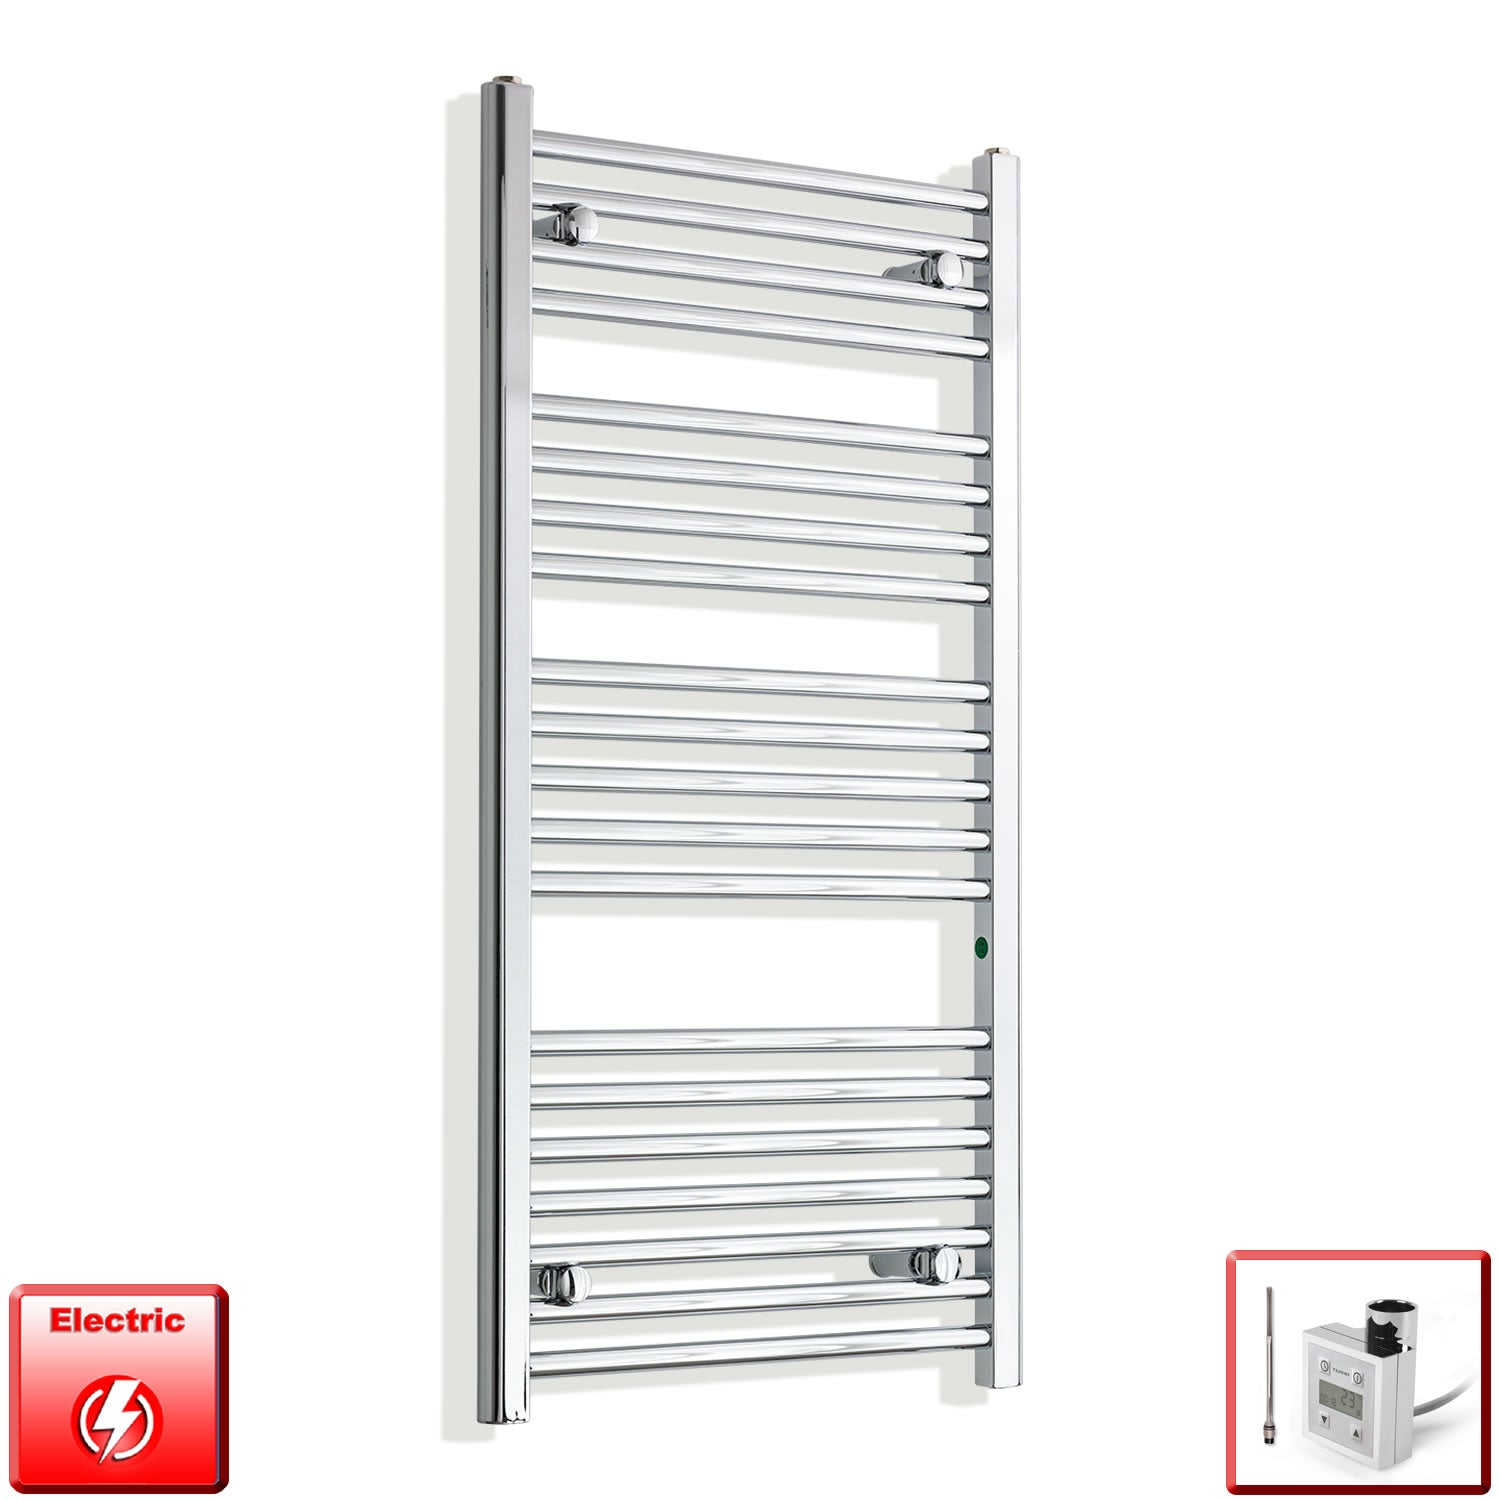 550mm Wide 1100mm High Pre-Filled Chrome Electric Towel Rail Radiator With Thermostatic KTX3 Element